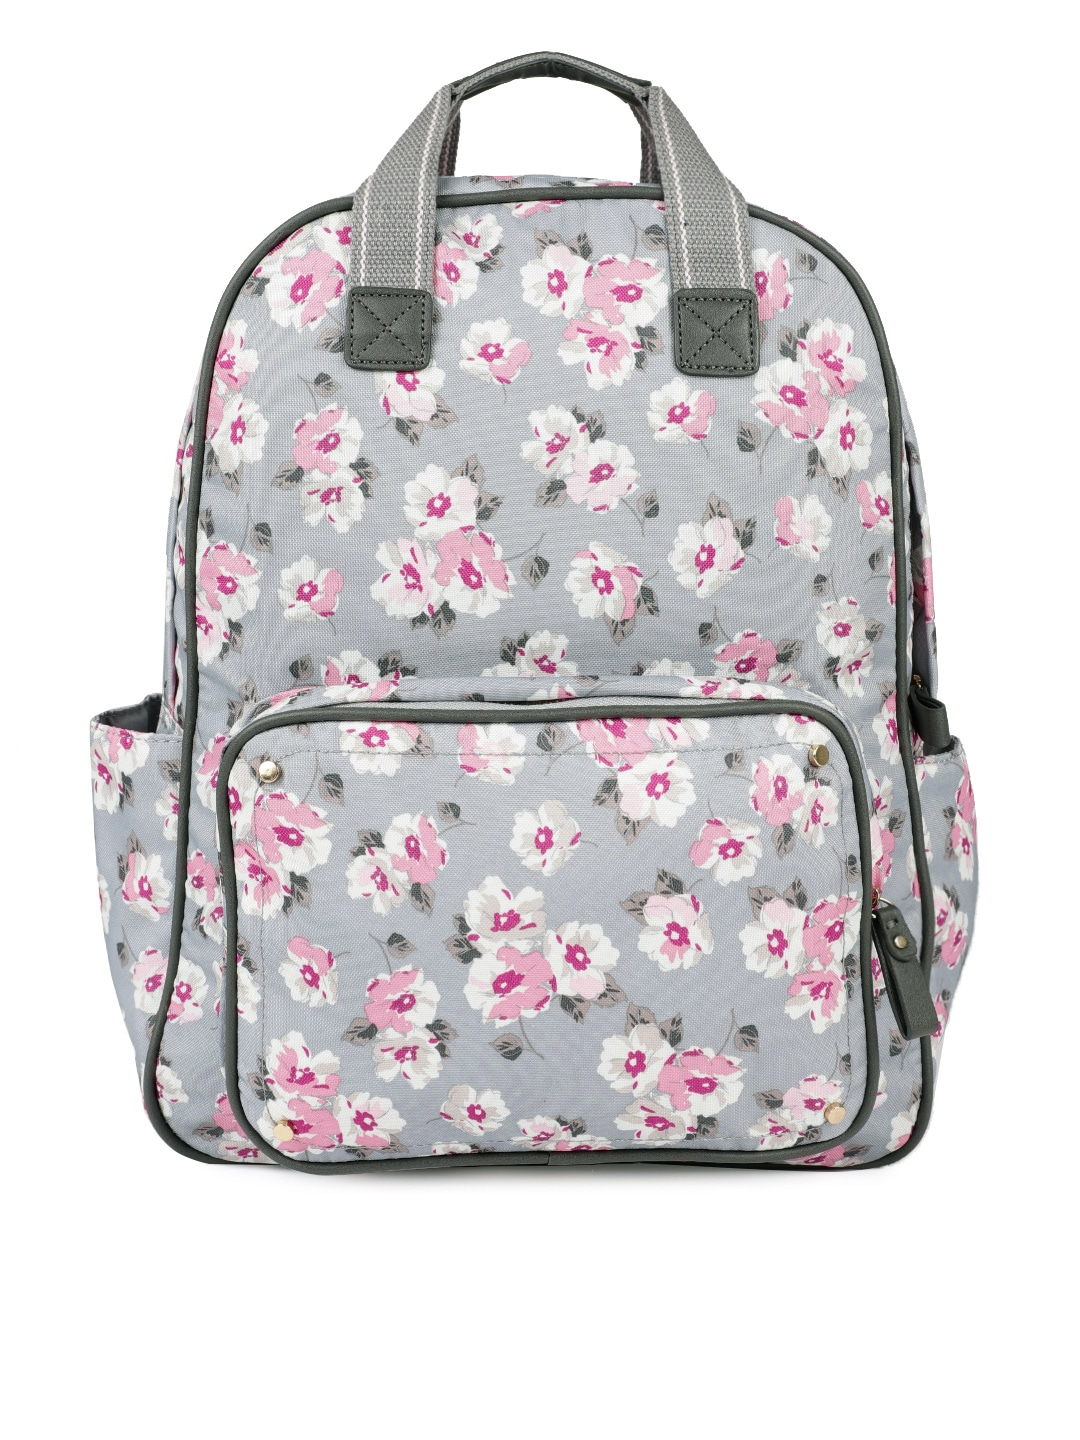 7ed97bba400a Graphic Backpacks - Buy Graphic Backpacks online in India